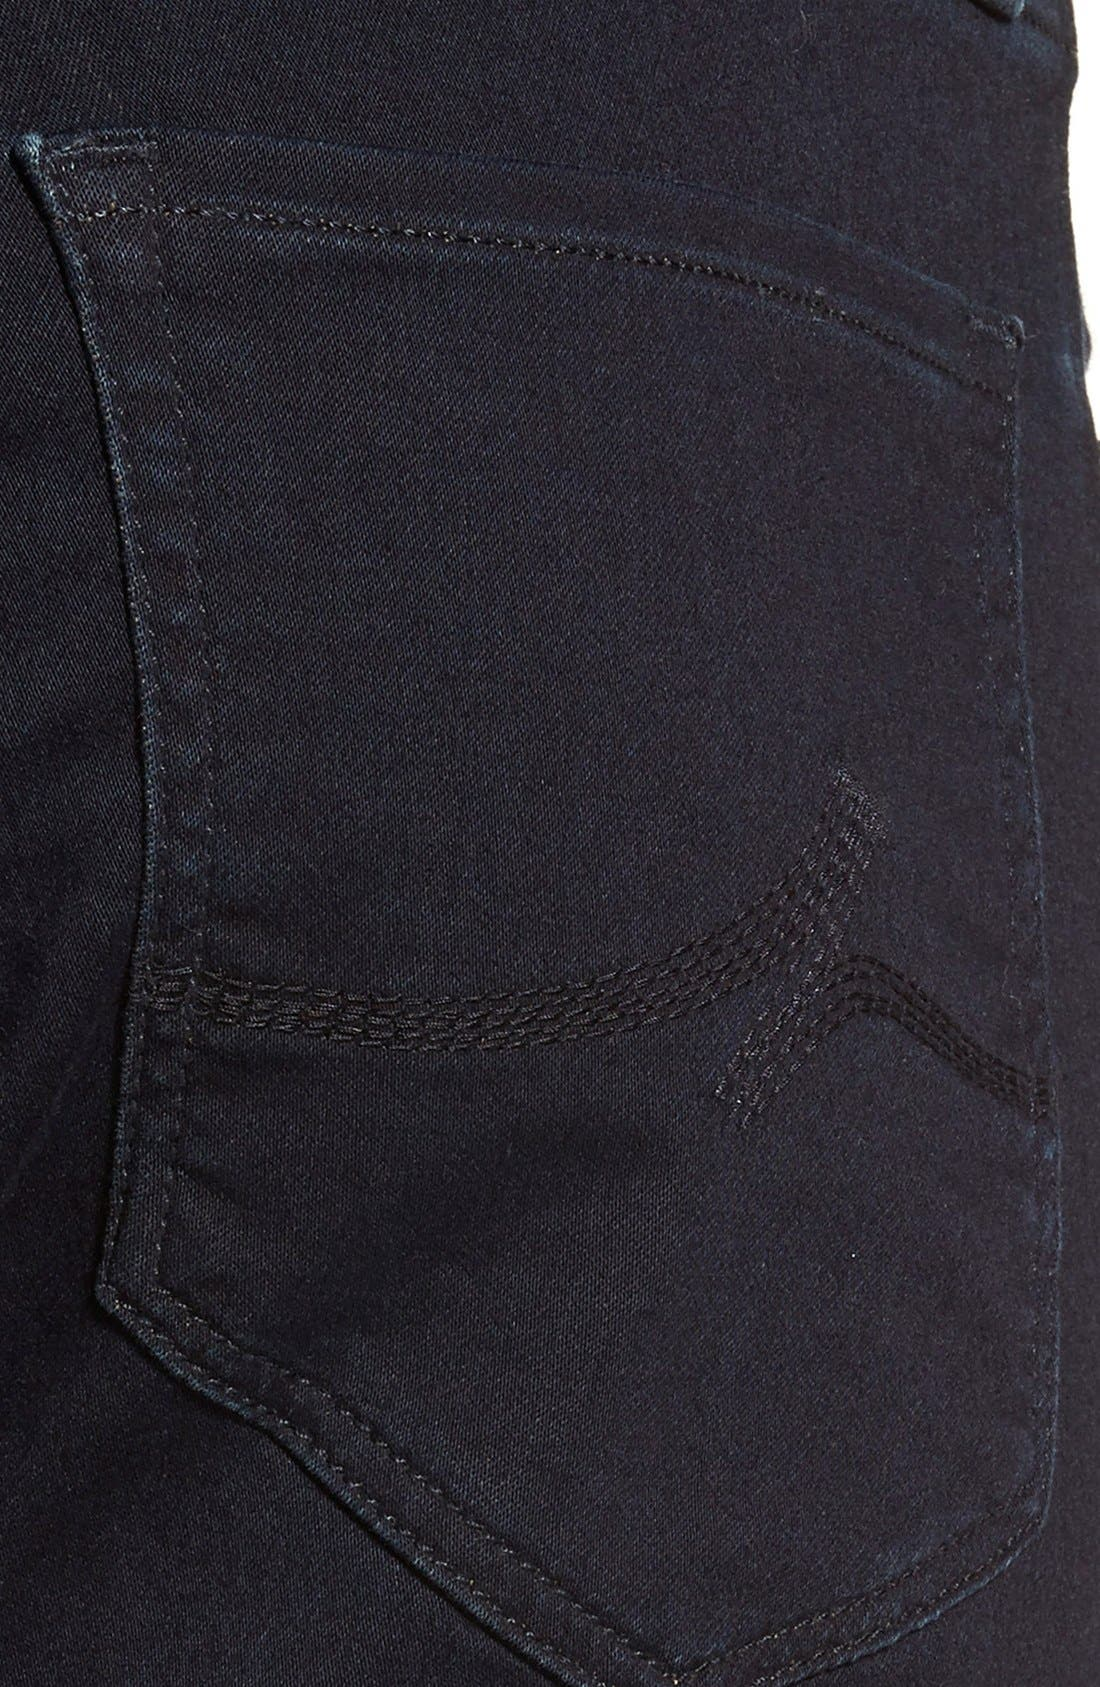 'Charisma' Relaxed Fit Jeans,                             Alternate thumbnail 3, color,                             RINSE SPORTY